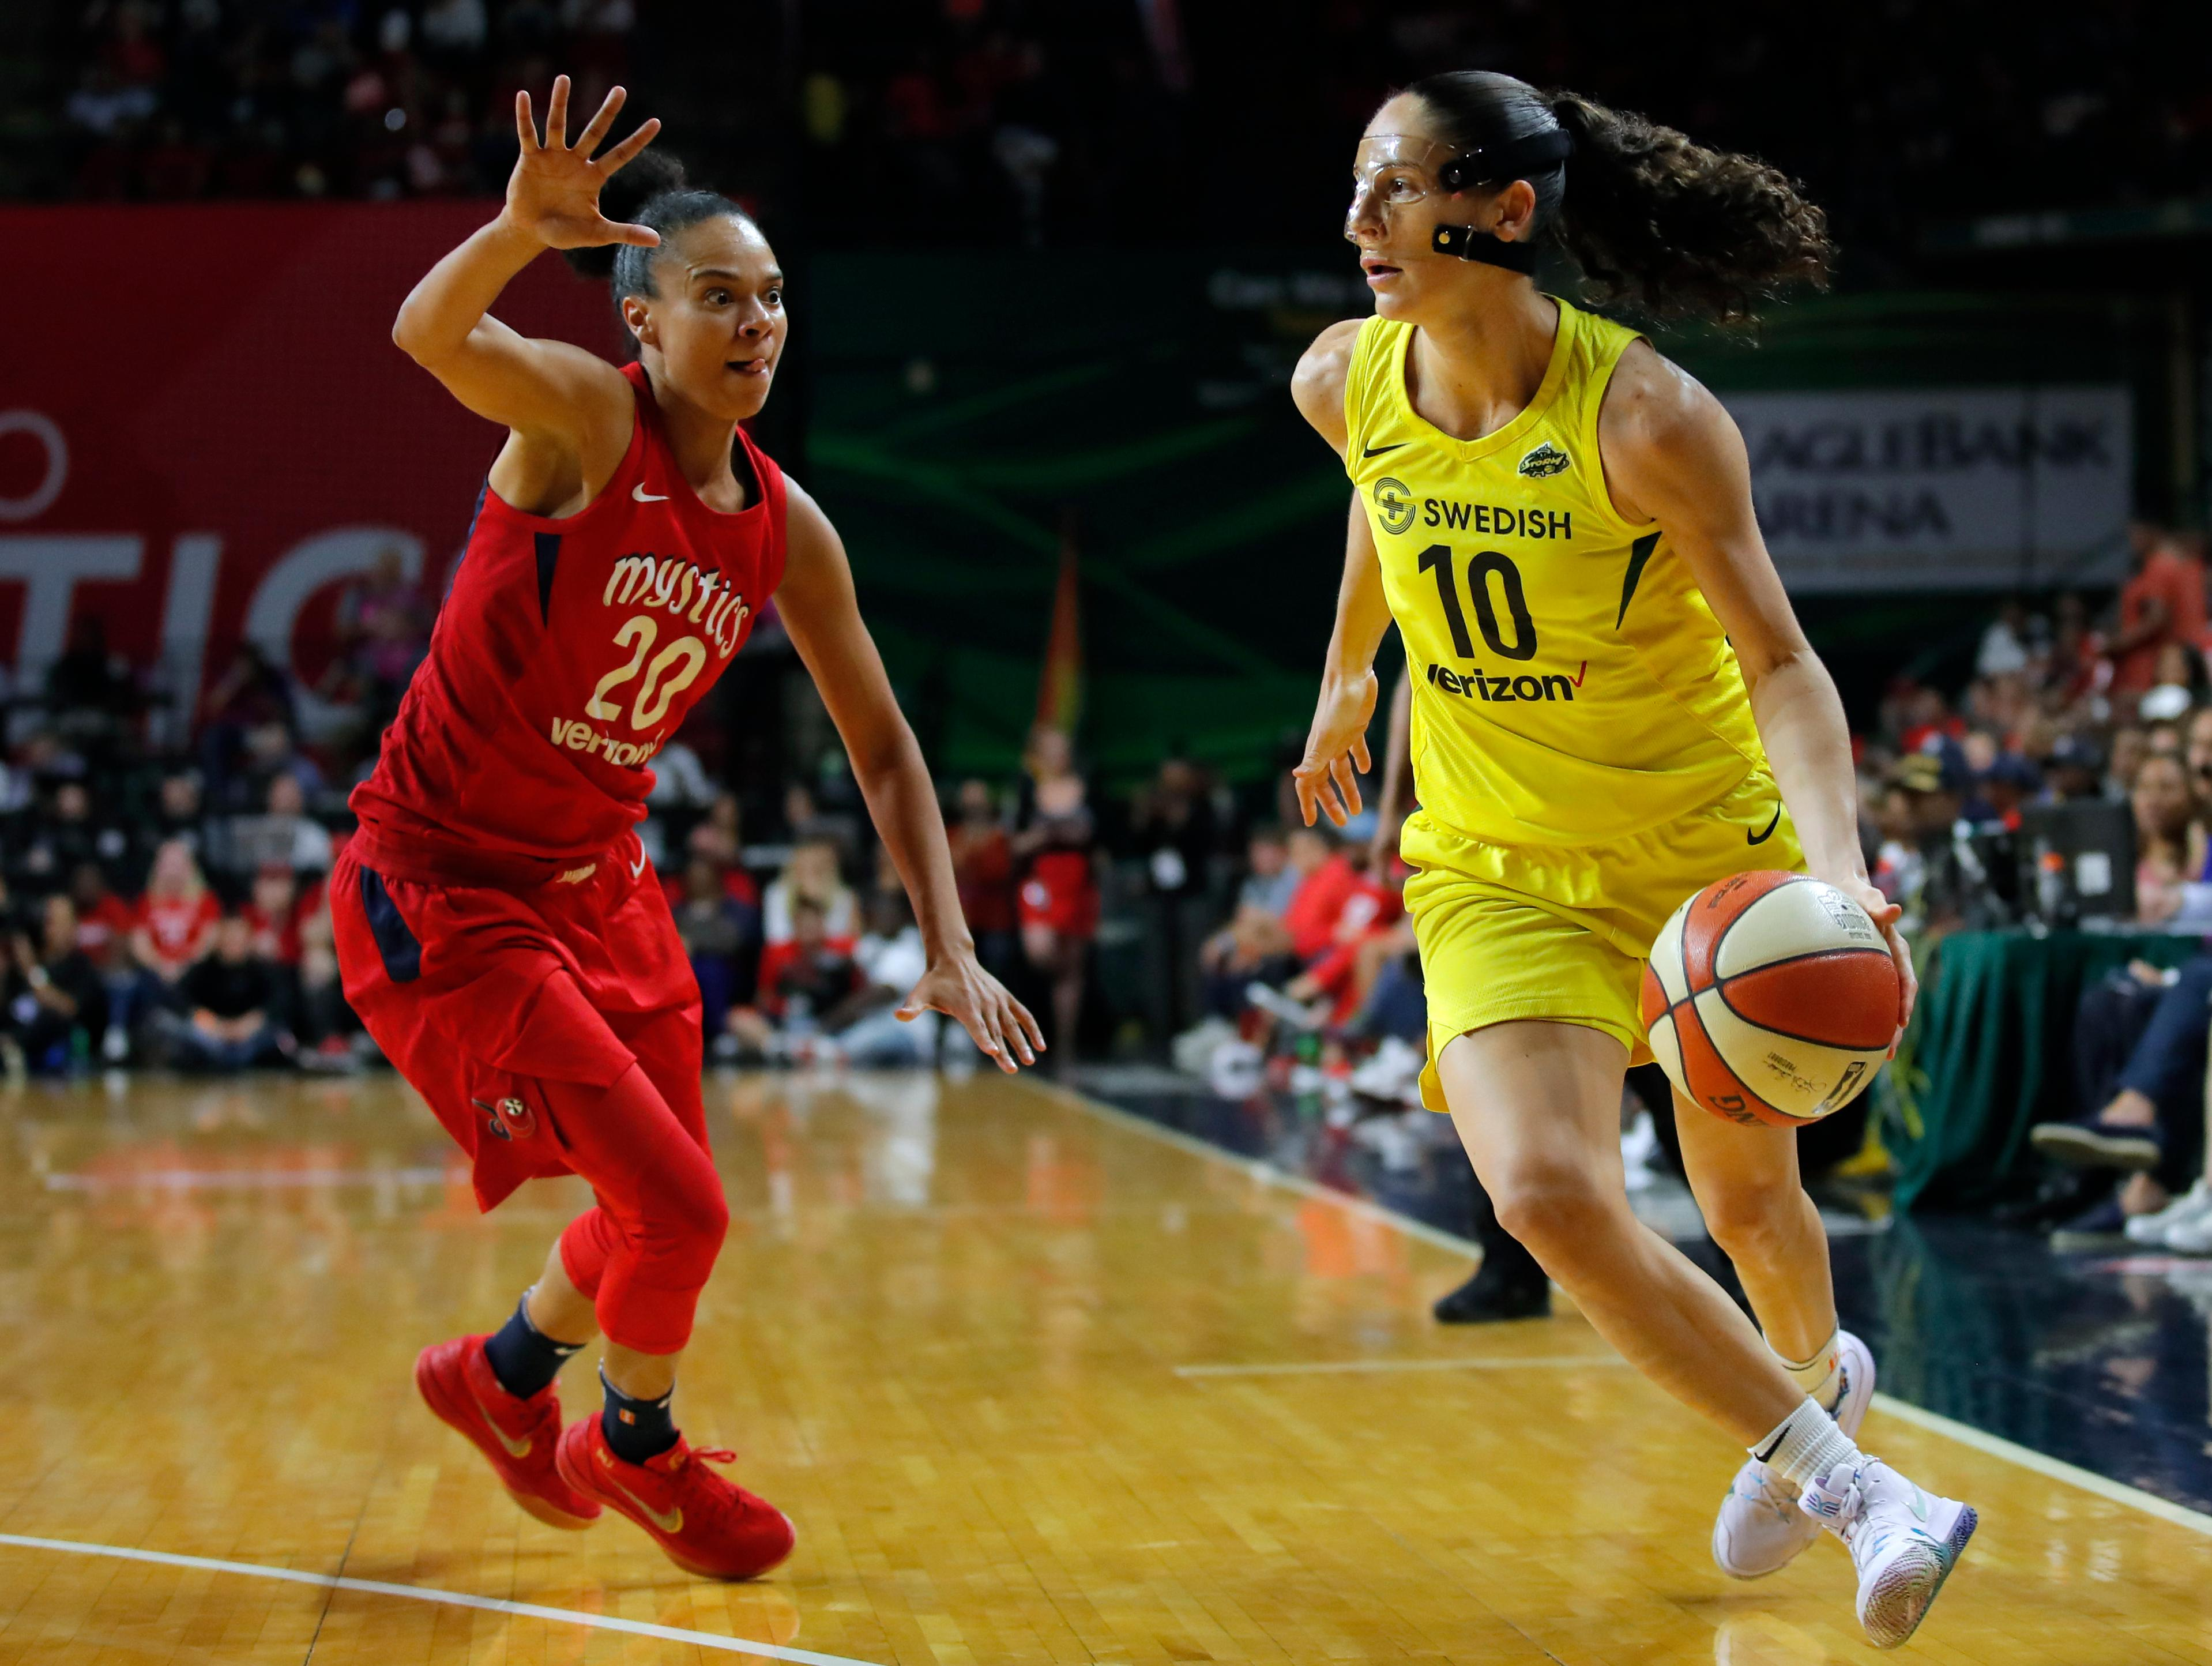 Seattle Storm guard Sue Bird (10) drives around Washington Mystics guard Kristi Toliver (20) during the second half of Game 3 of the WNBA basketball finals, Wednesday, Sept. 18 2018, in Fairfax, Va. The Seattle Storm won 98-82. (AP Photo/Carolyn Kaster)